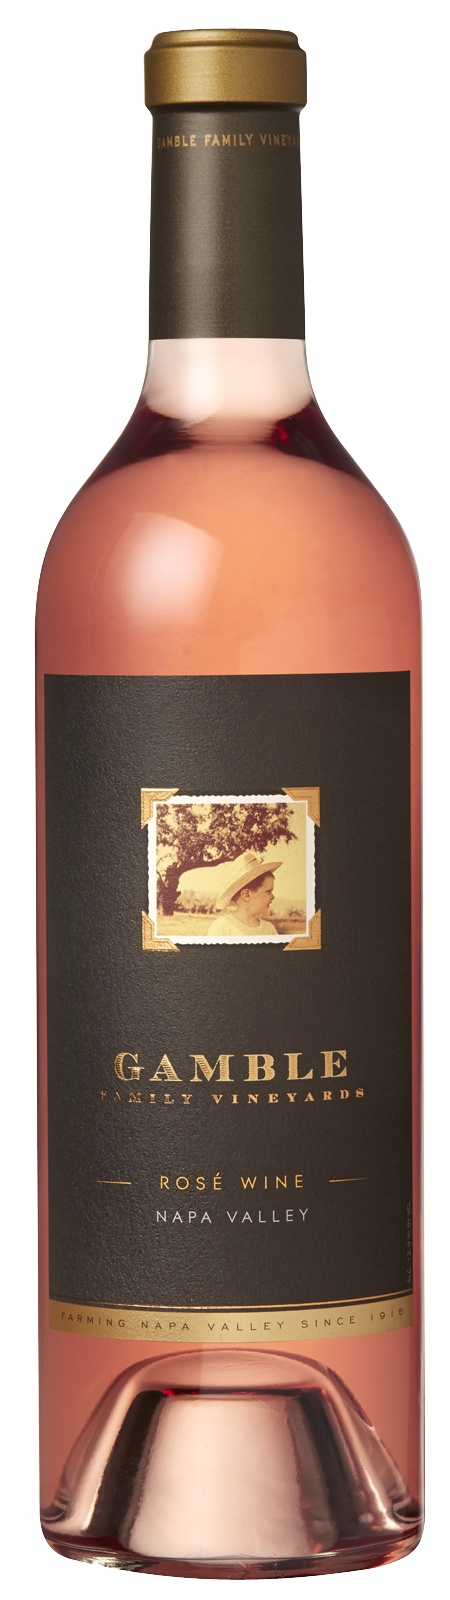 Gamble Family Vineyards Napa Valley Rose 2018 (750ml)